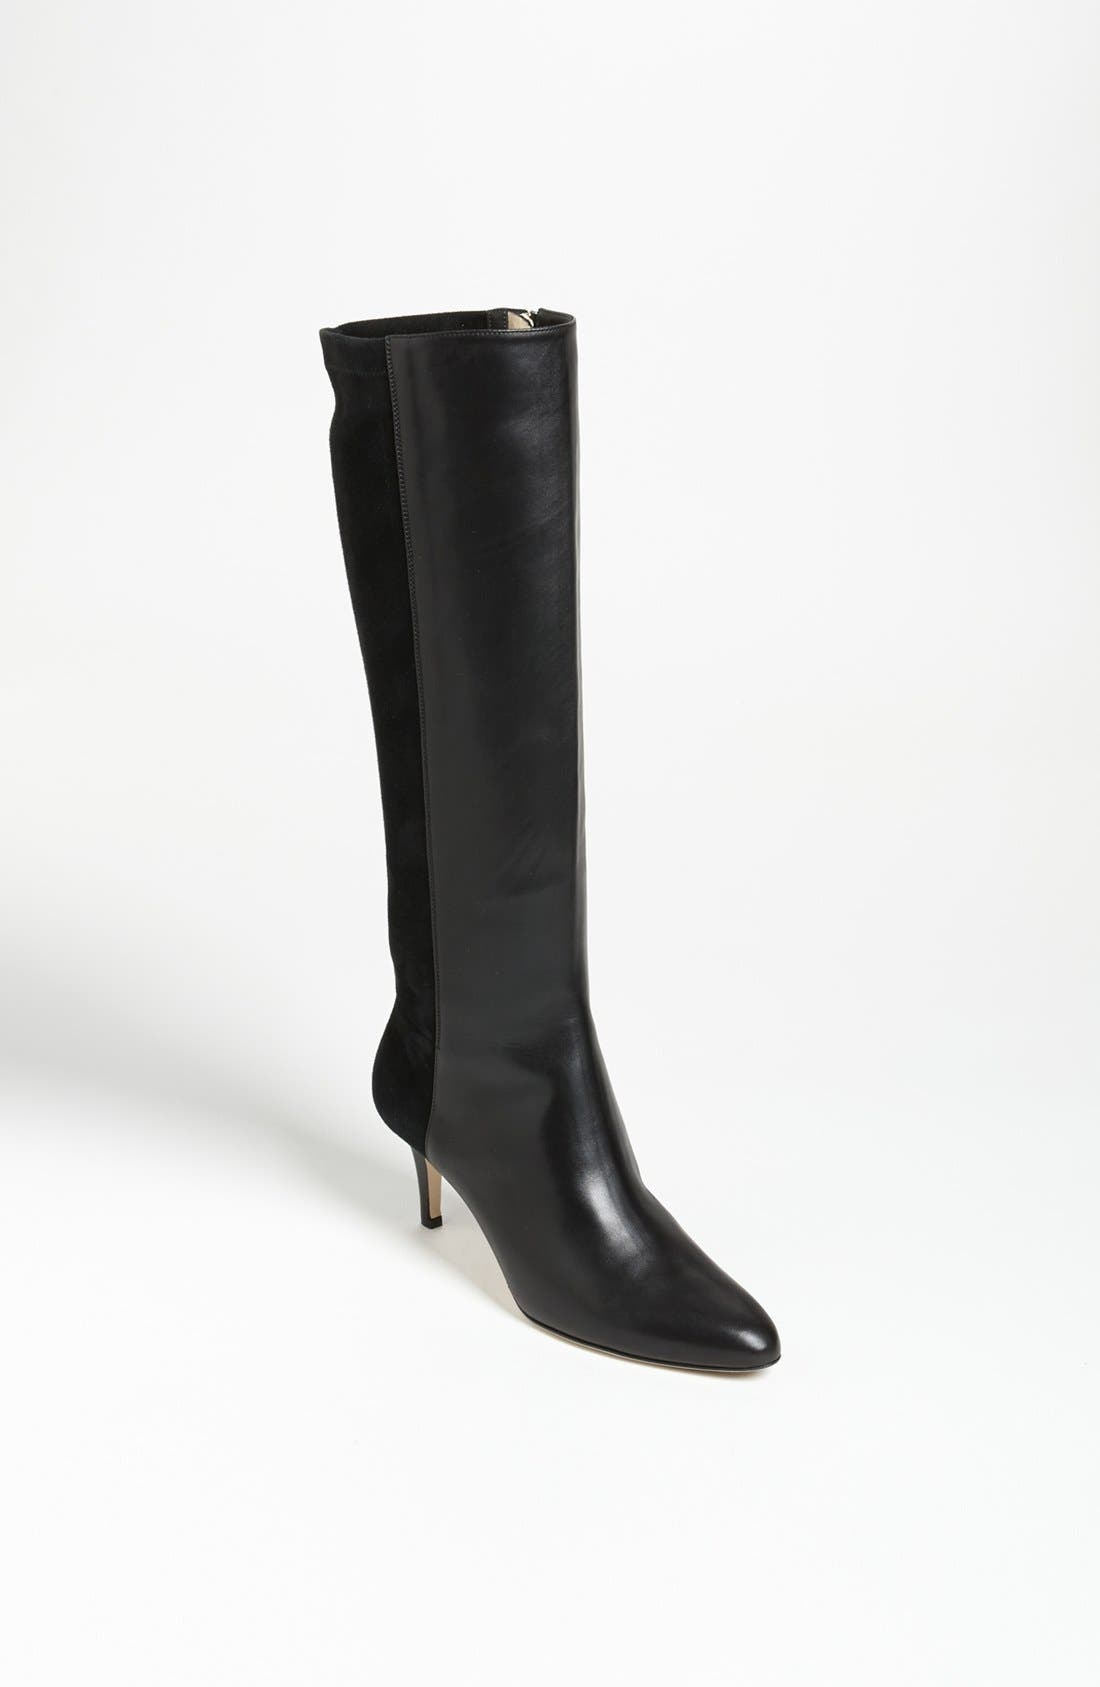 JIMMY CHOO, 'Aiden' Boot, Main thumbnail 1, color, 001